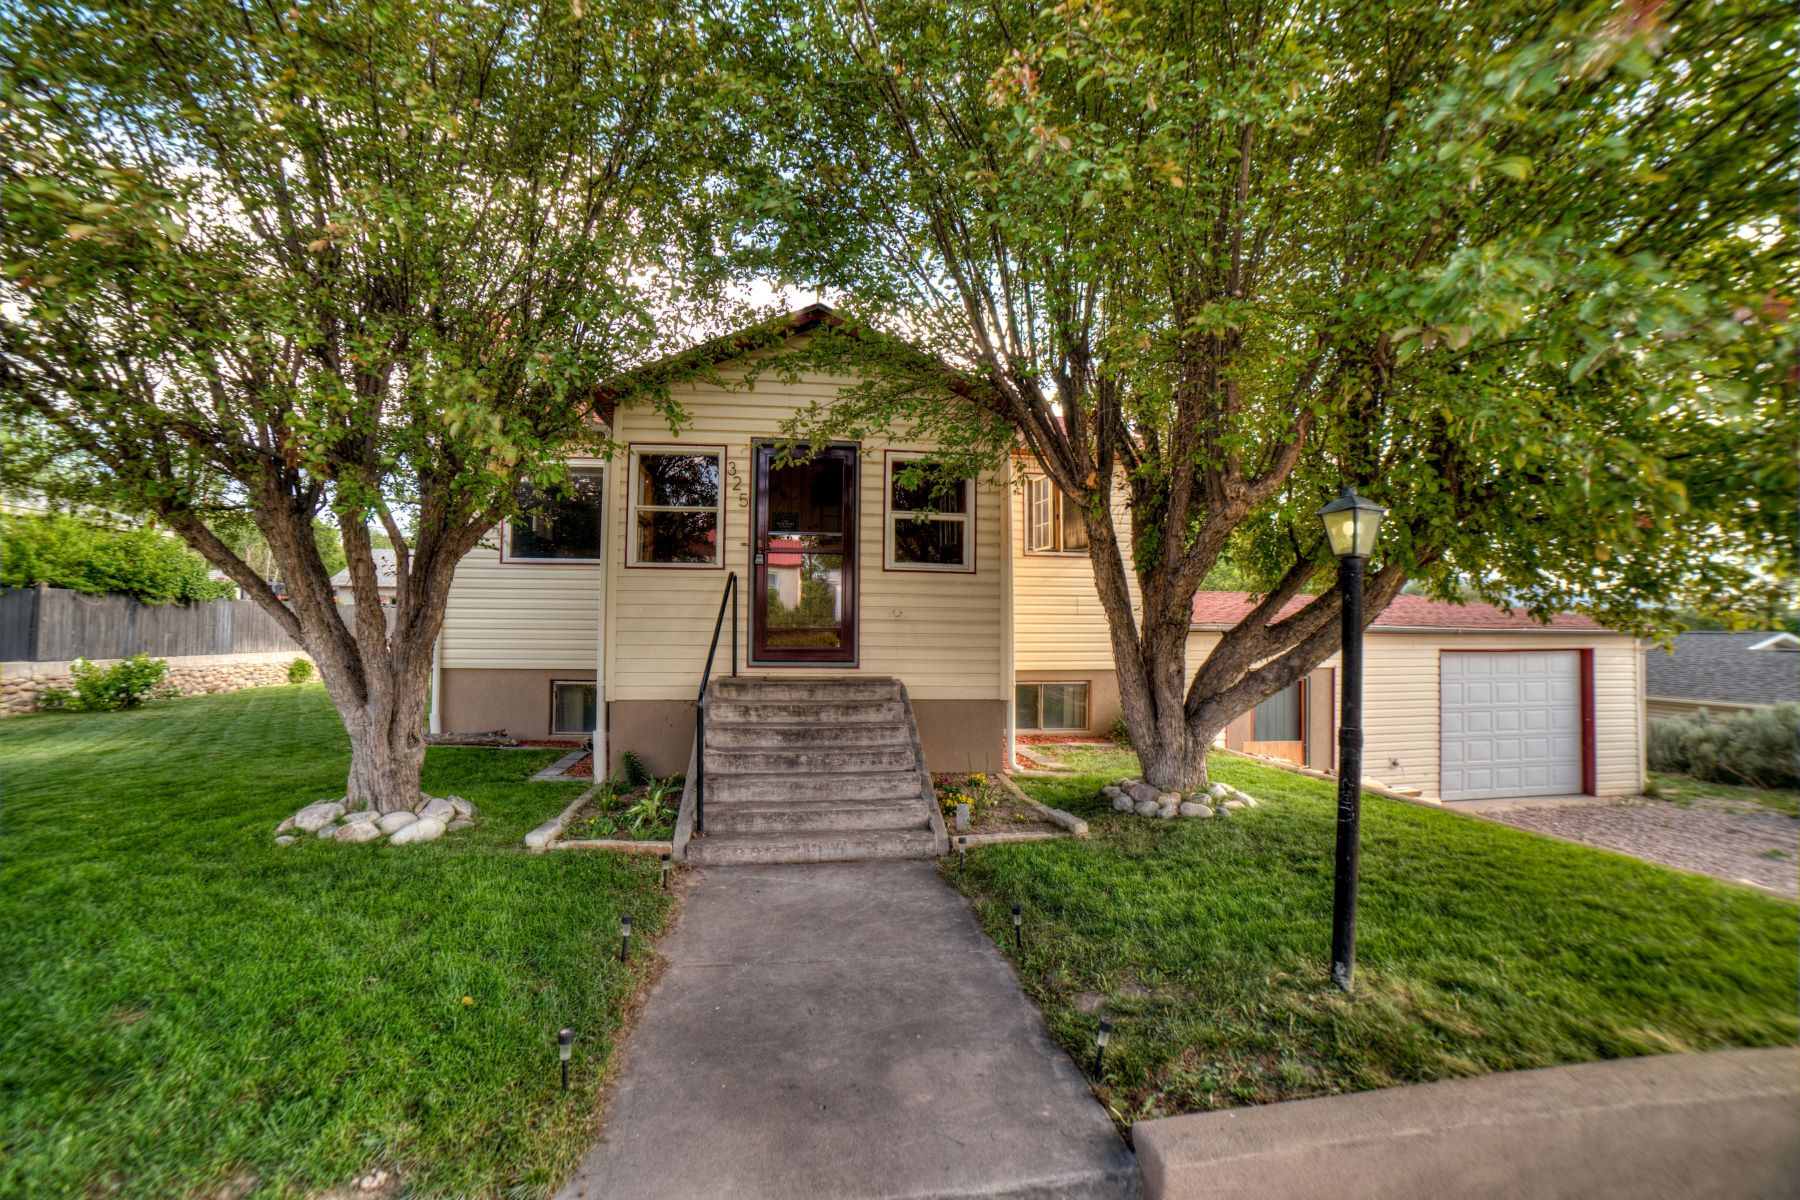 Single Family Home for Sale at Vintage Charm and Modern Convenience 325 E 10th St Rifle, Colorado, 81650 United States